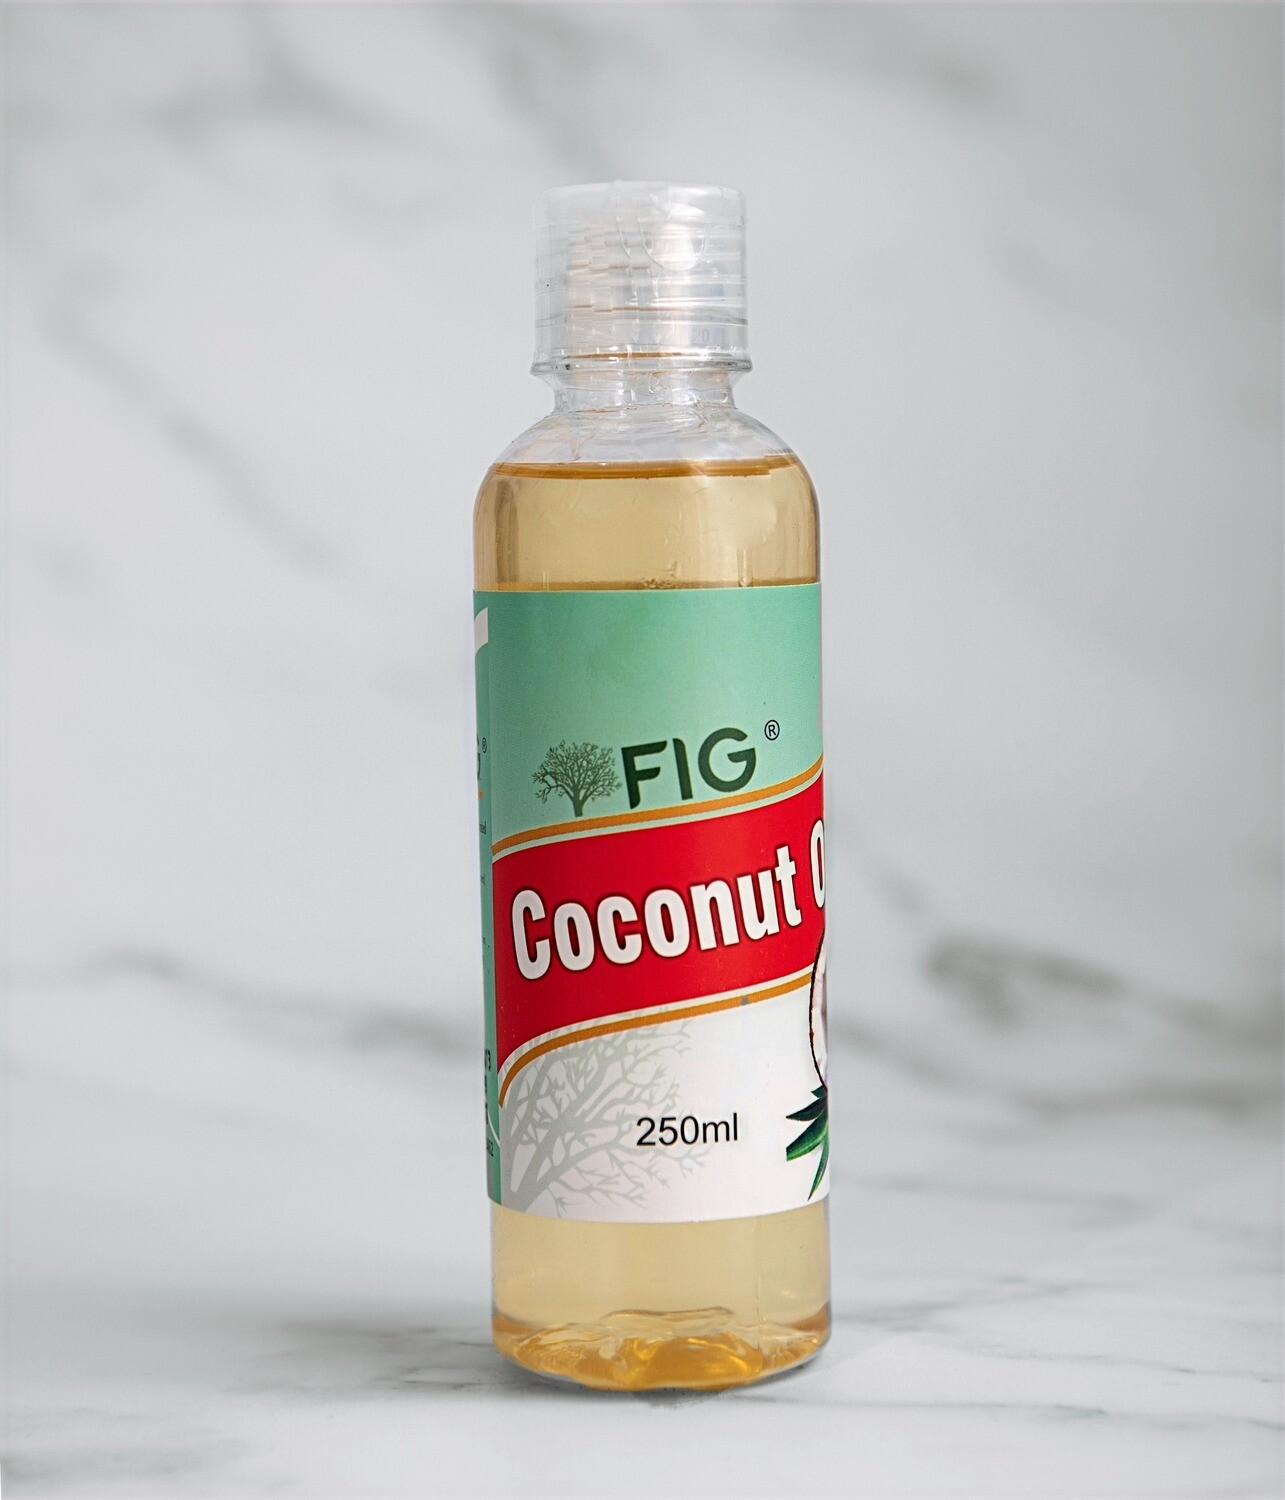 FIG COCONUT OIL (250ml)